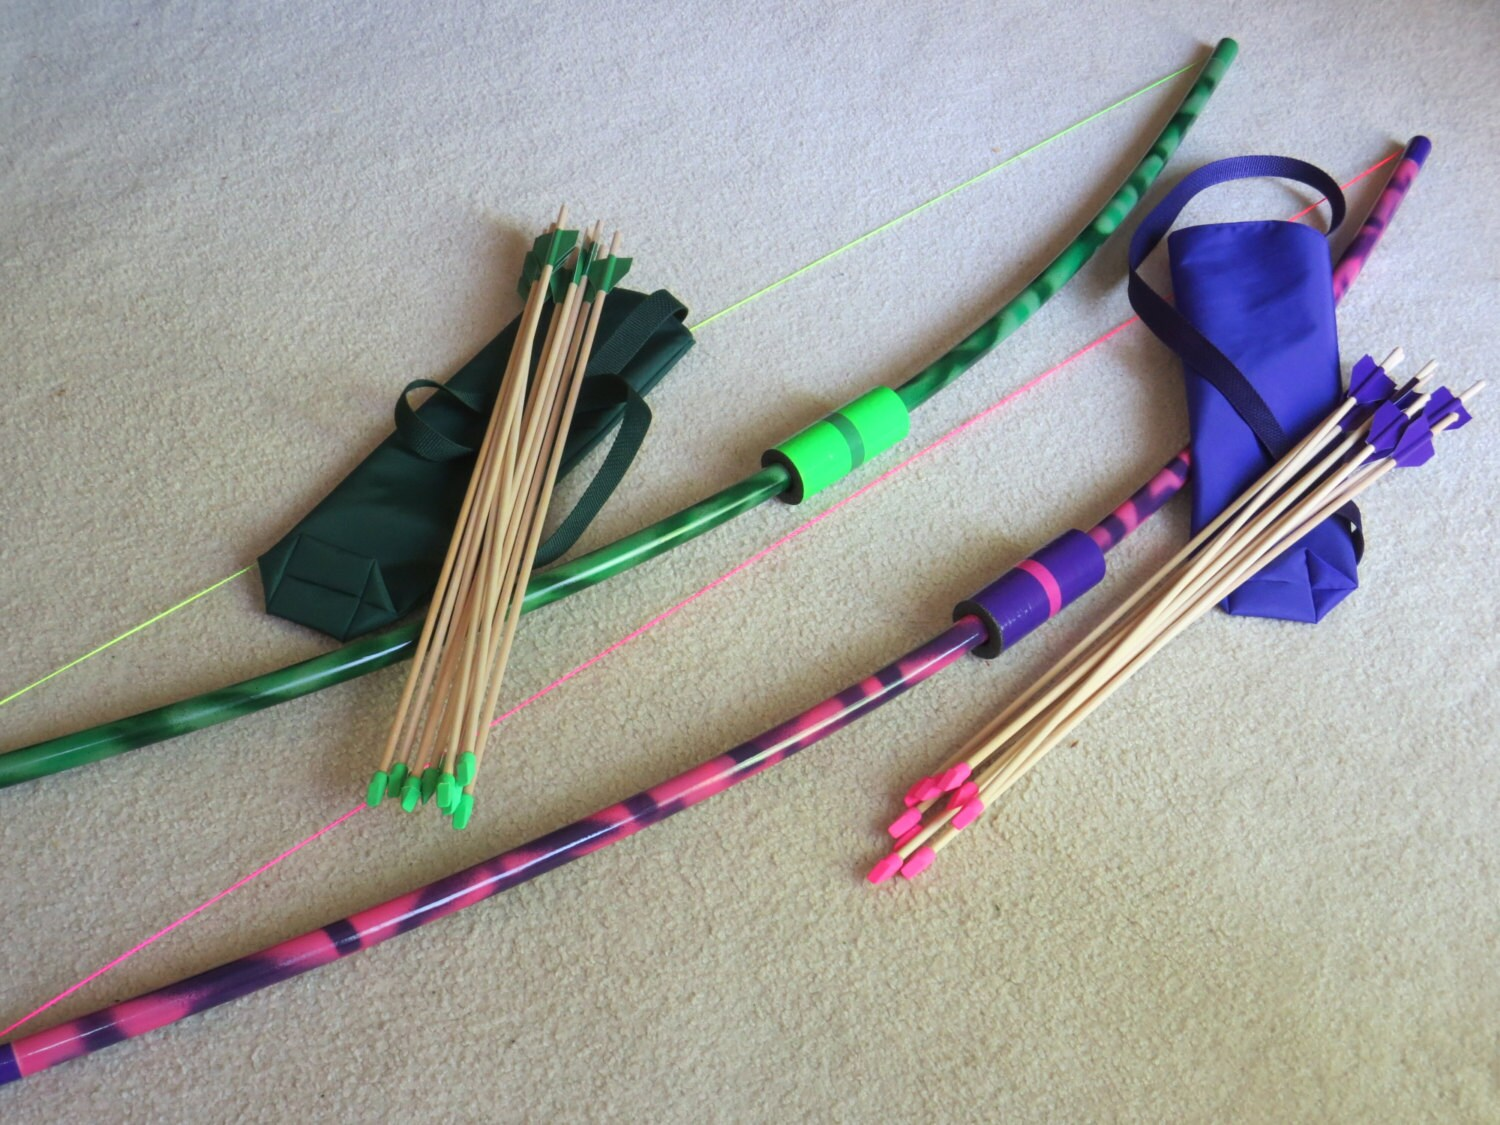 Longbows 2 pack pvc sets 2 quivers 20 eraser arrows outdoor for Kids pvc bow